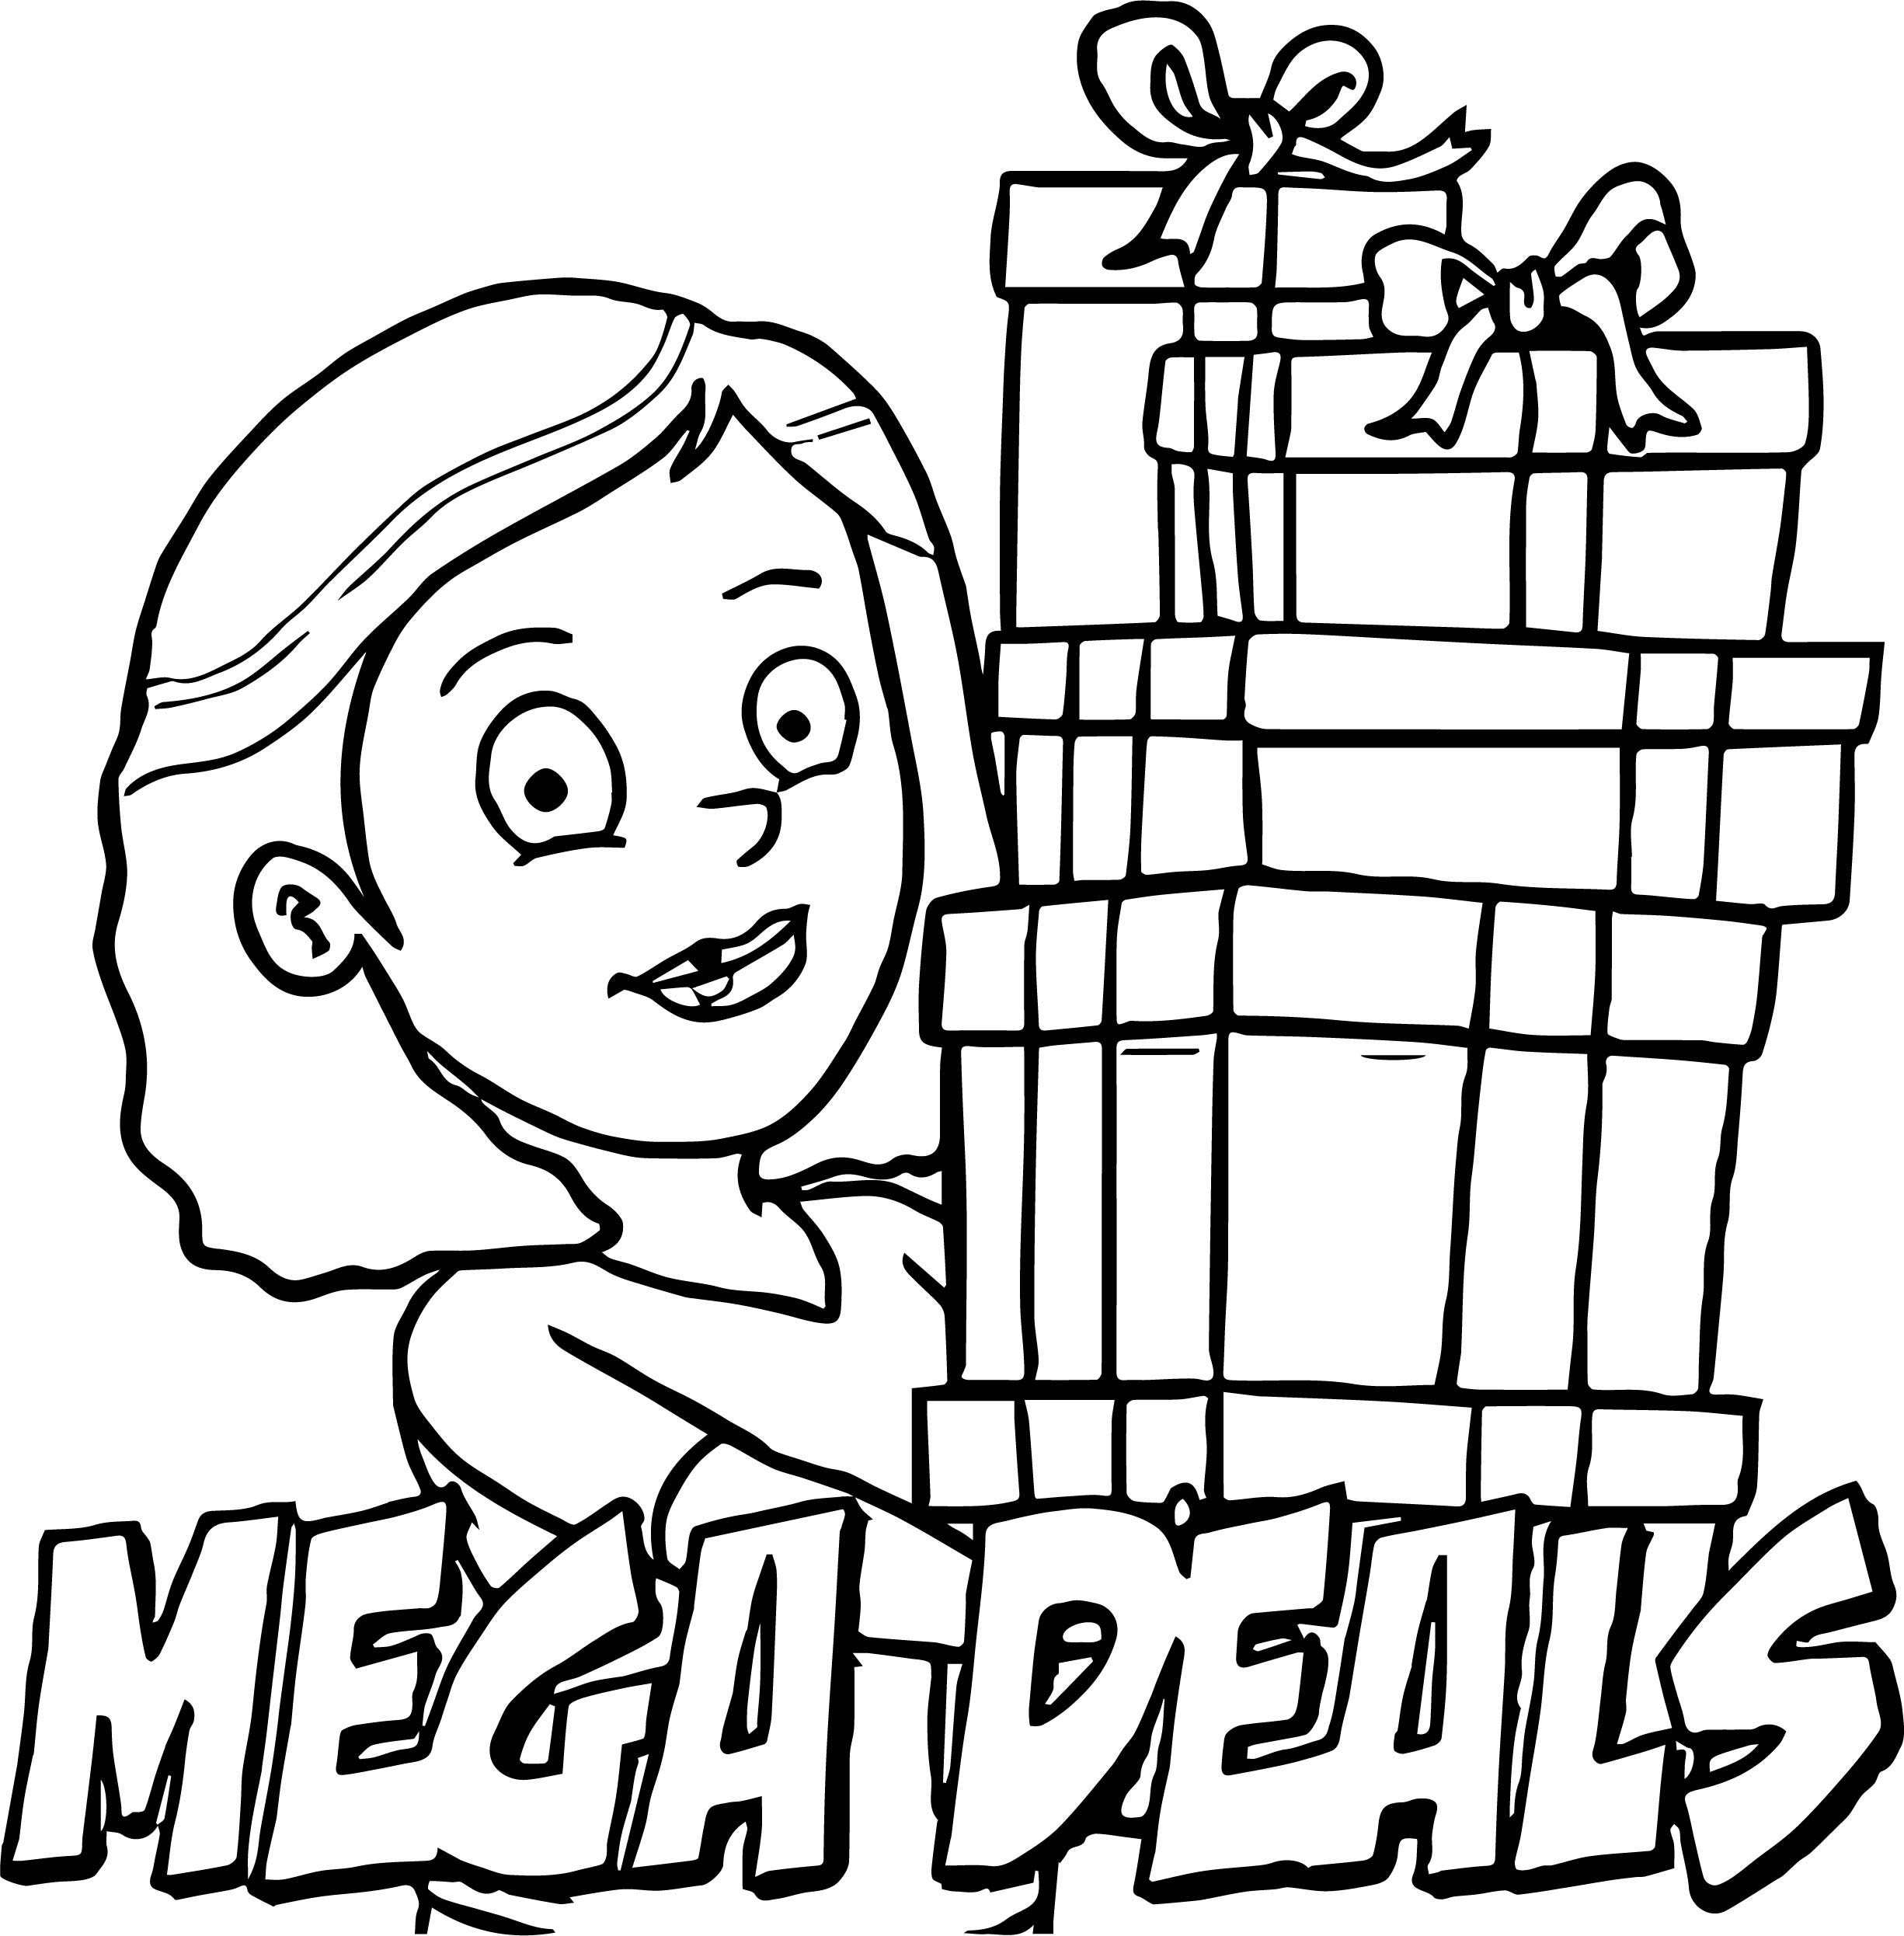 Mega Deals Cartoon Girl Coloring Page